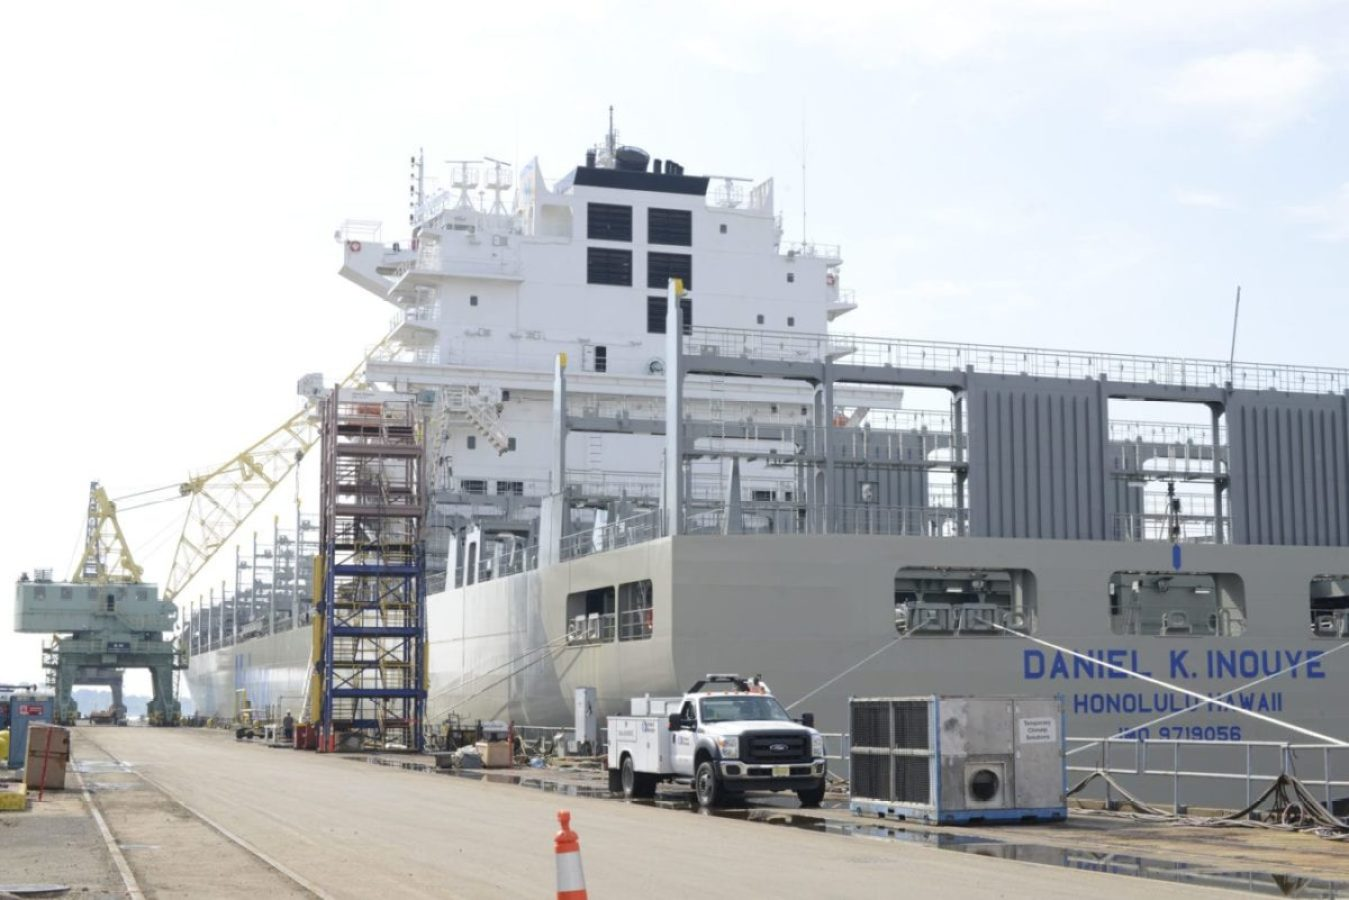 The Daniel K. Inouye, an 850-foot container ship being constructed in Philadelphia Shipyards, is the largest container vessel constructed in the United States, and is one of many ships marine inspectors from Coast Guard Sector Delaware Bay work with to ensure maritime safety and security.